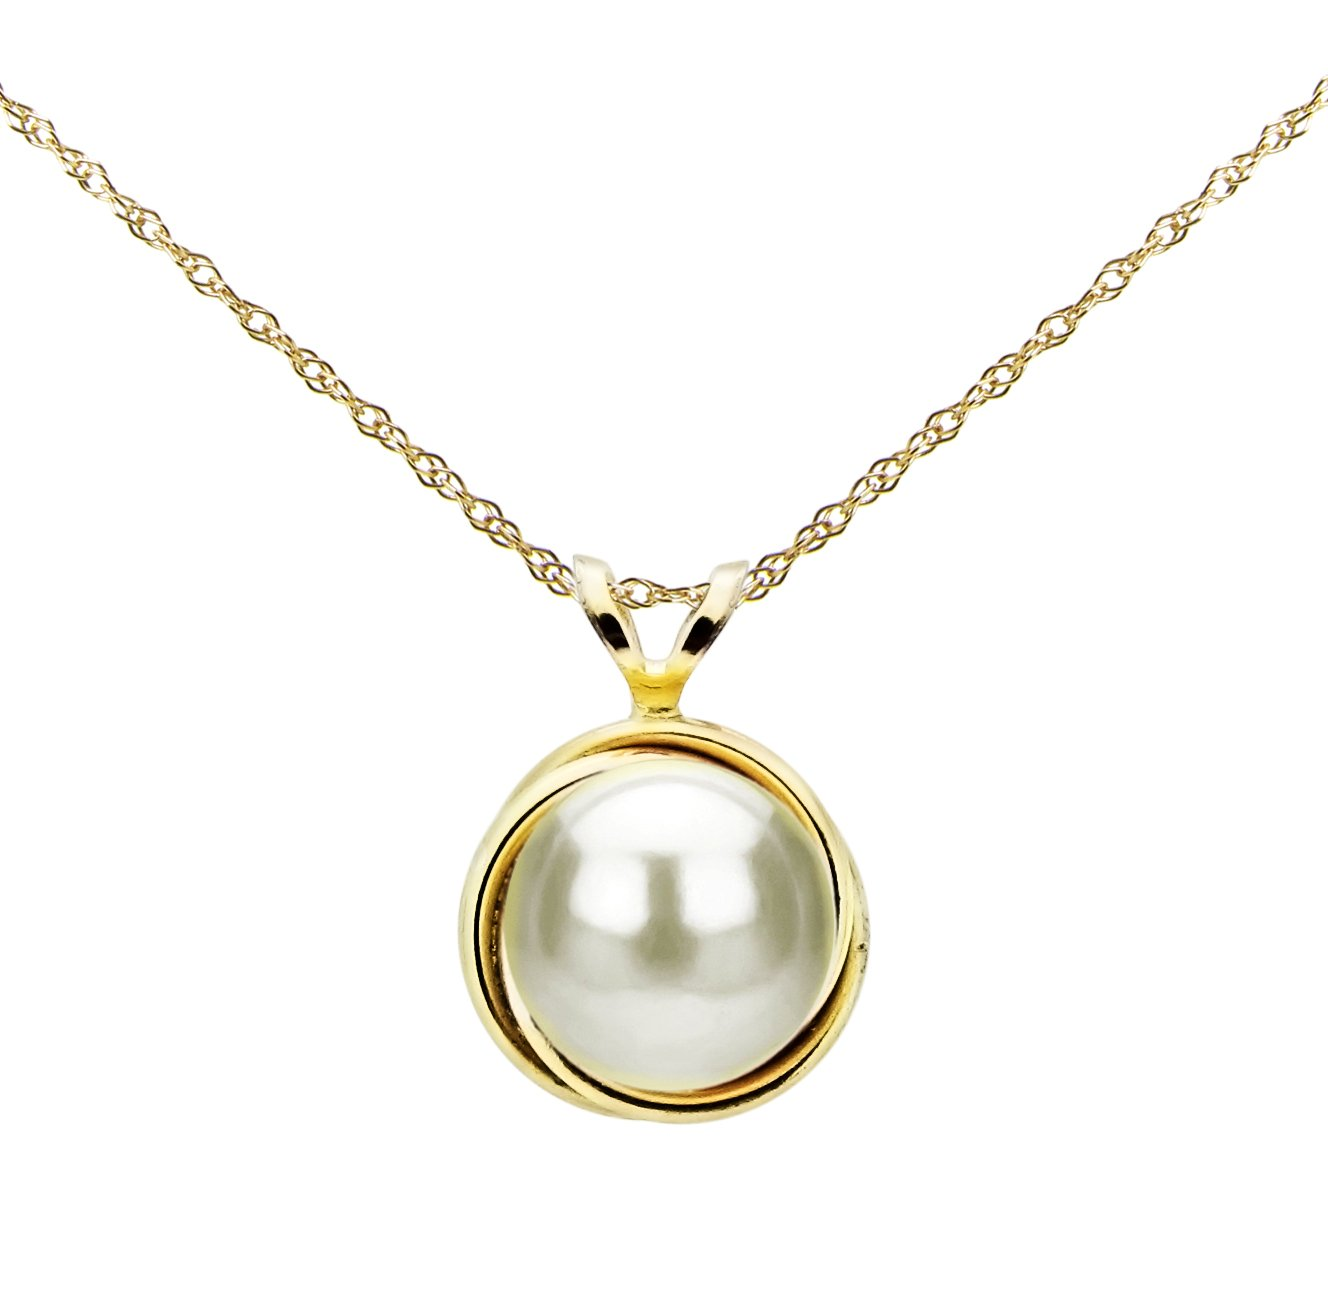 14k Yellow Gold 8-8.5mm White Button-shape Freshwater Cultured Pearl Love-knot Bazel Design Pendant, 18''